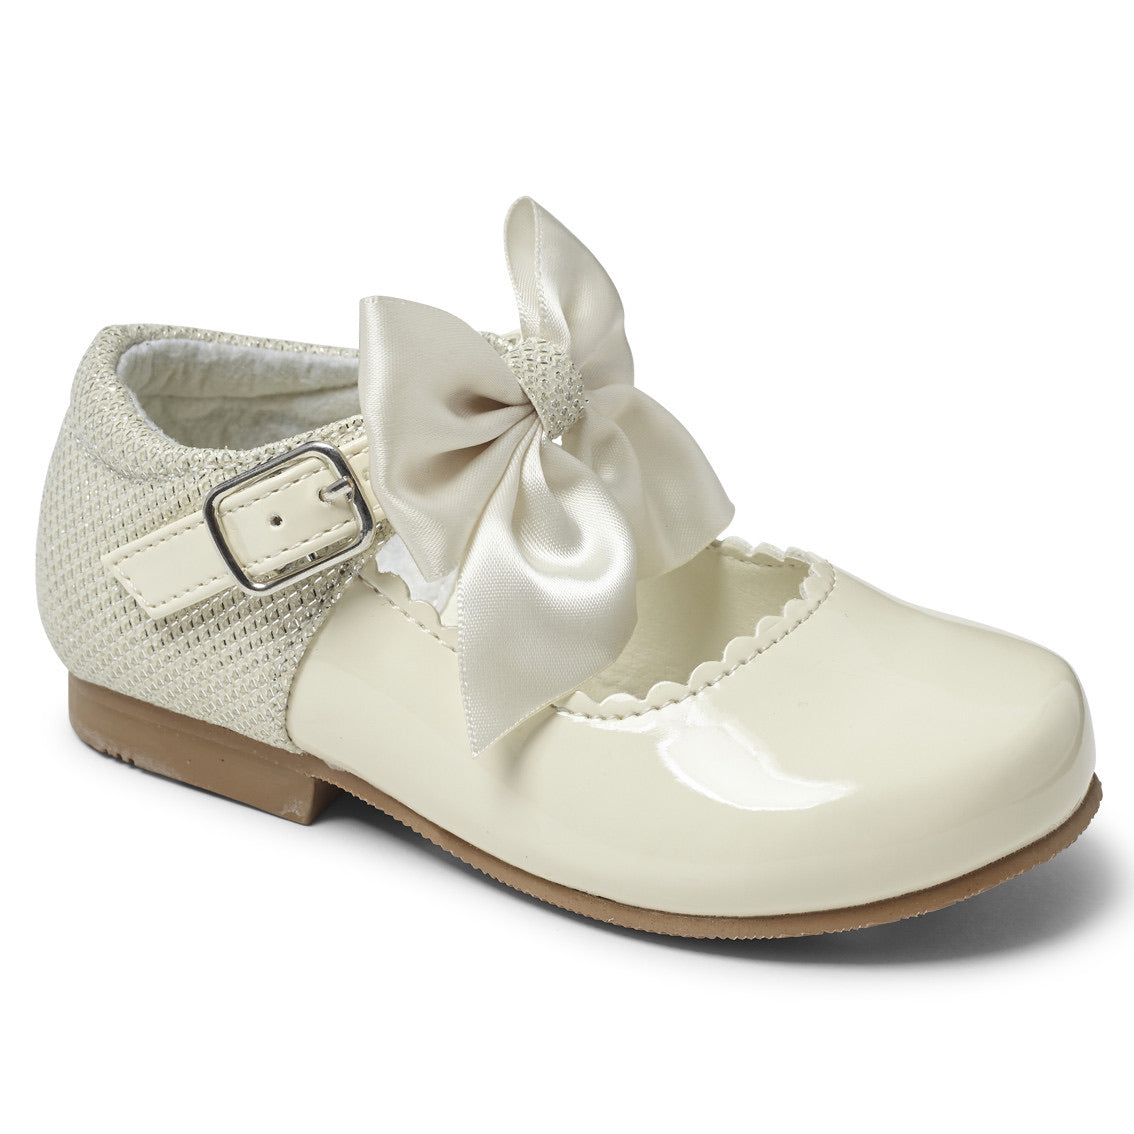 Kristy Ivory Bow Hard Sole Shoes